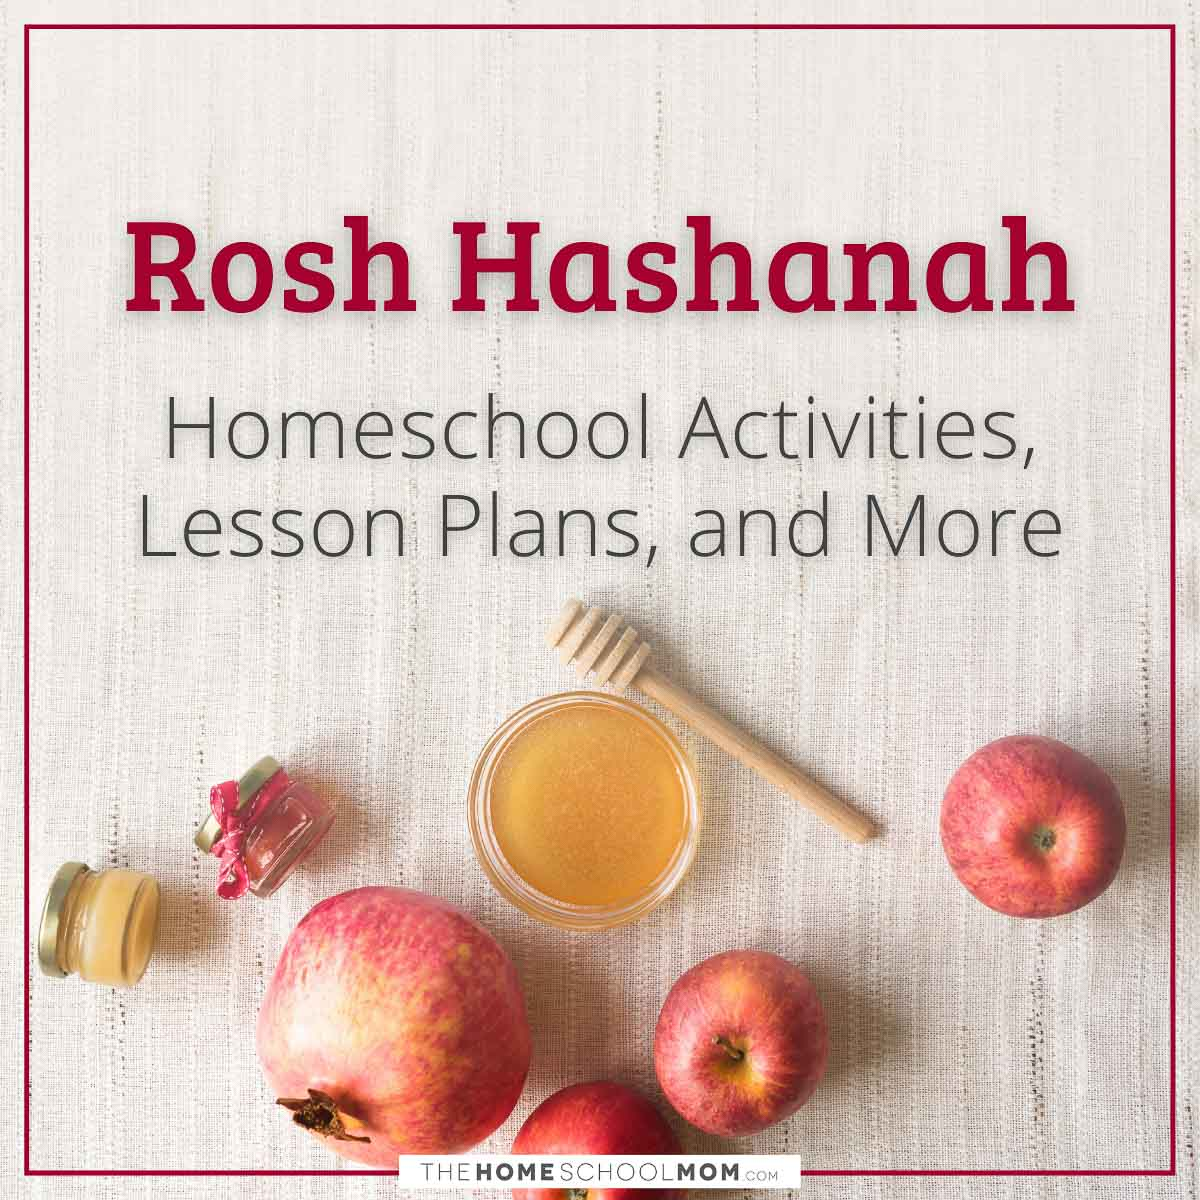 Rosh Hashanah Homeschool Activities, Lesson Plans, and More